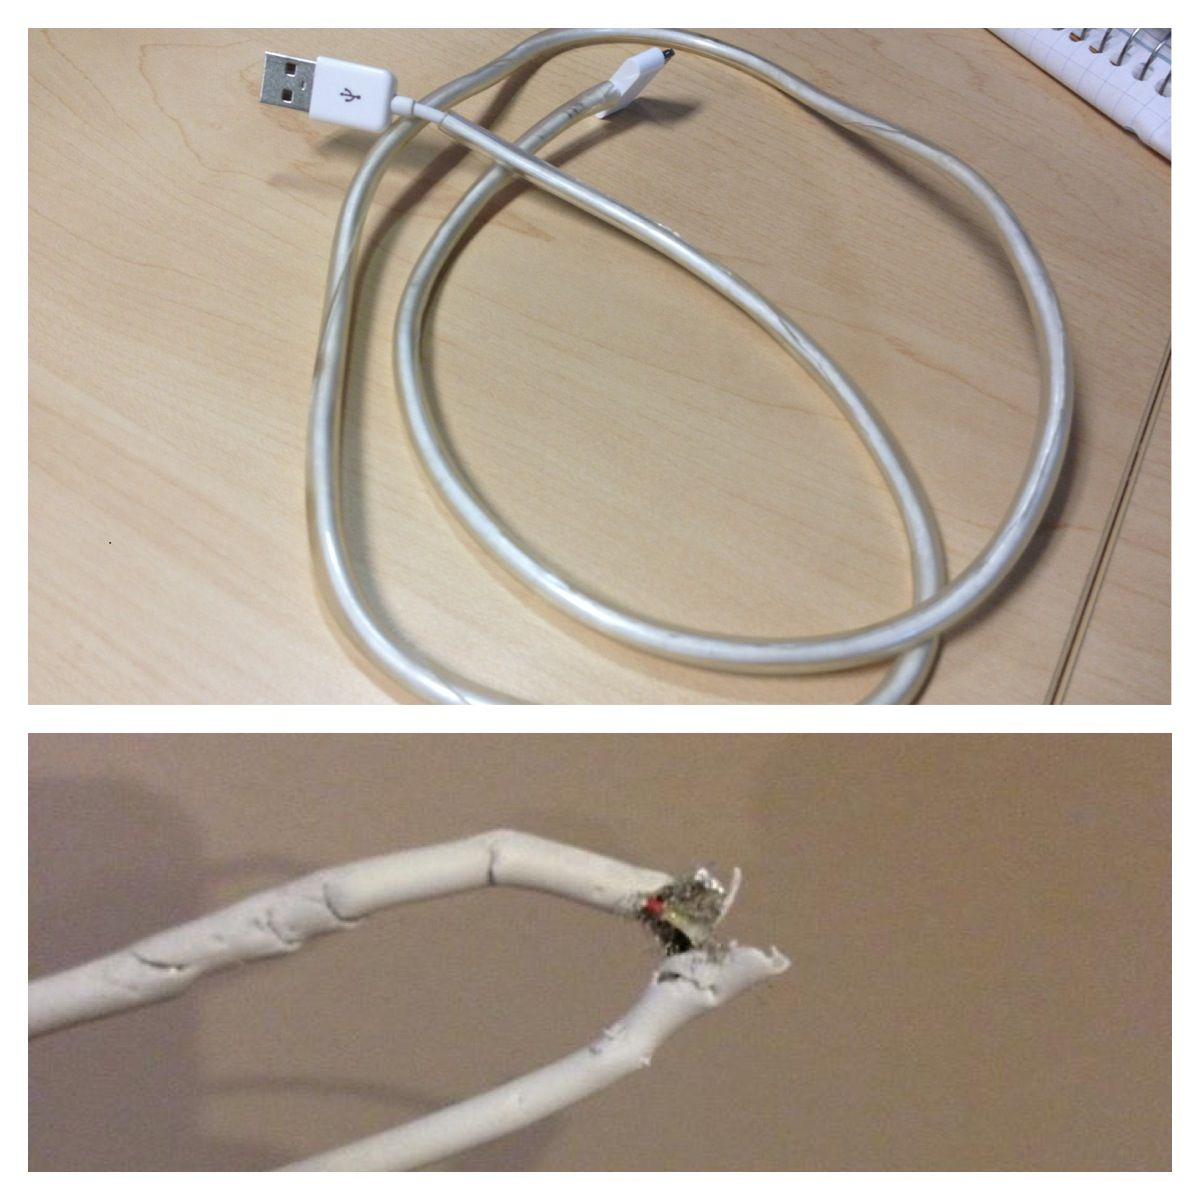 iPhone charger cord... Bottom pic. - 3rd cord that the cat chewed ...